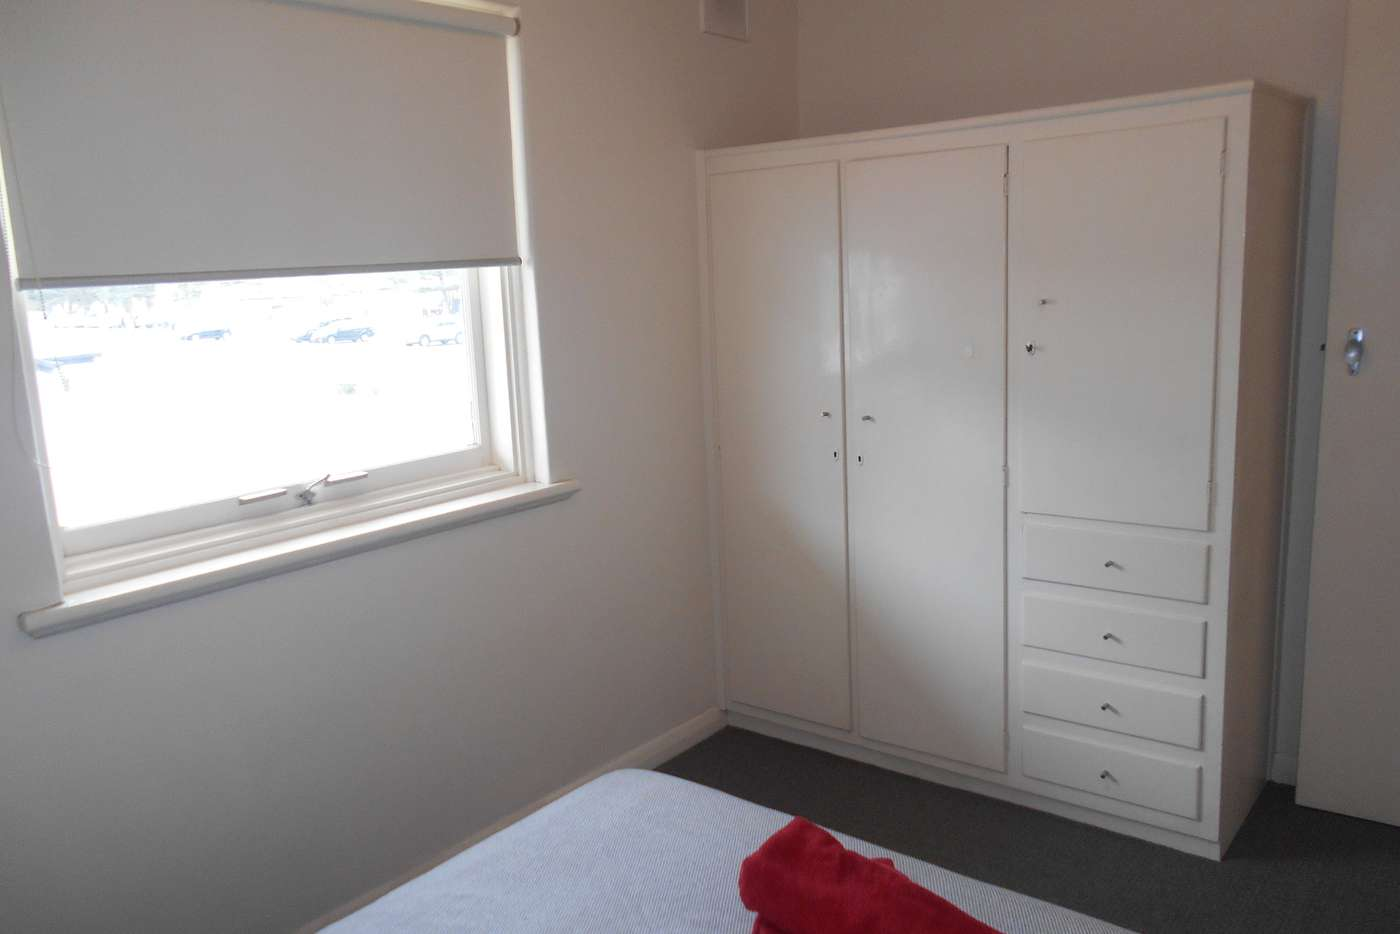 Seventh view of Homely unit listing, 6 / 123 Tapleys Hill Rd, Glenelg North SA 5045